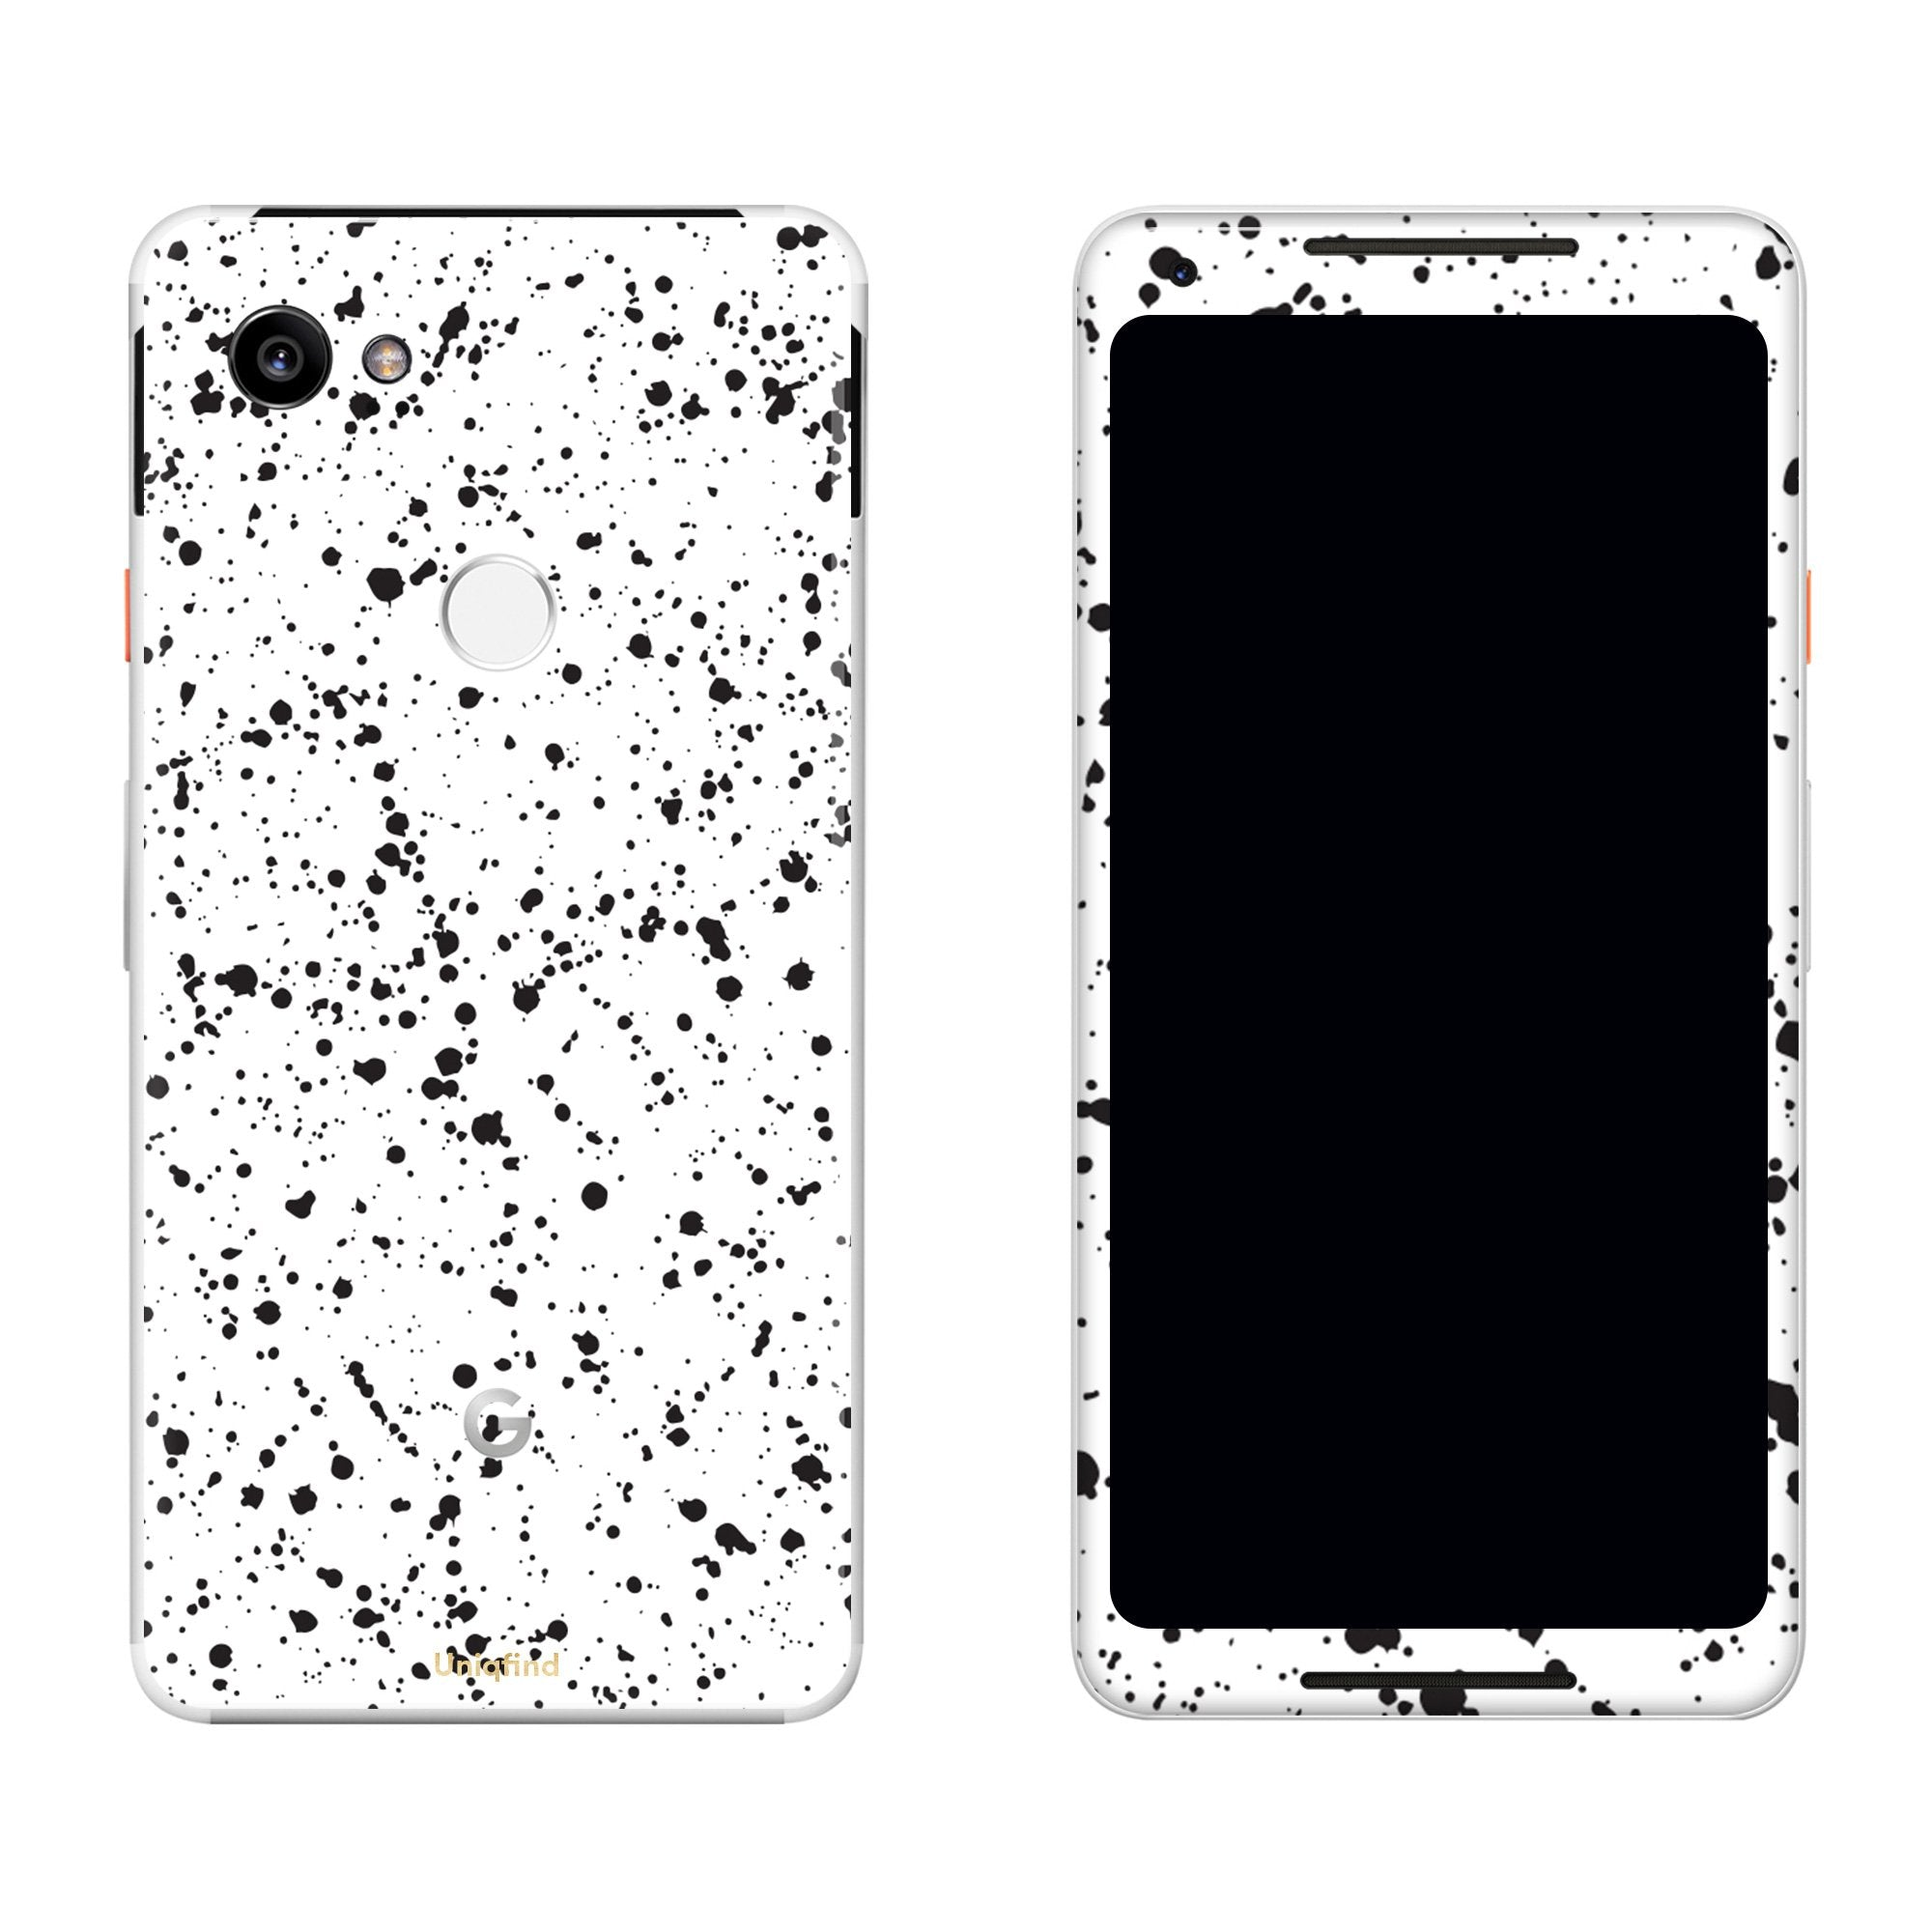 White Speckle Pixel 2 Skin + Case